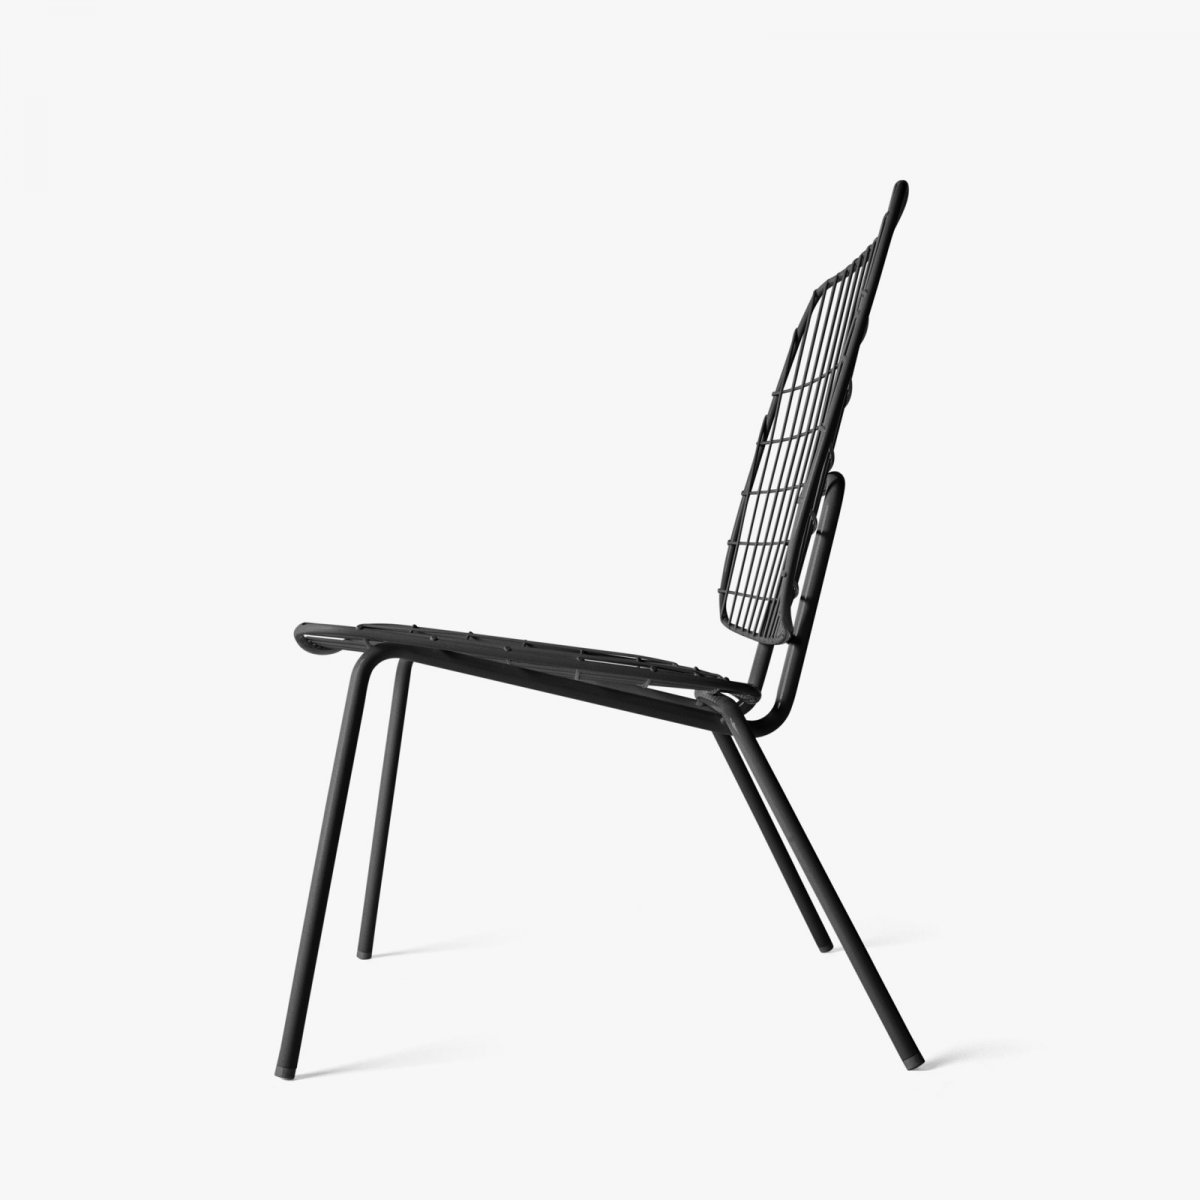 WM String Lounge Chair, black, side view.